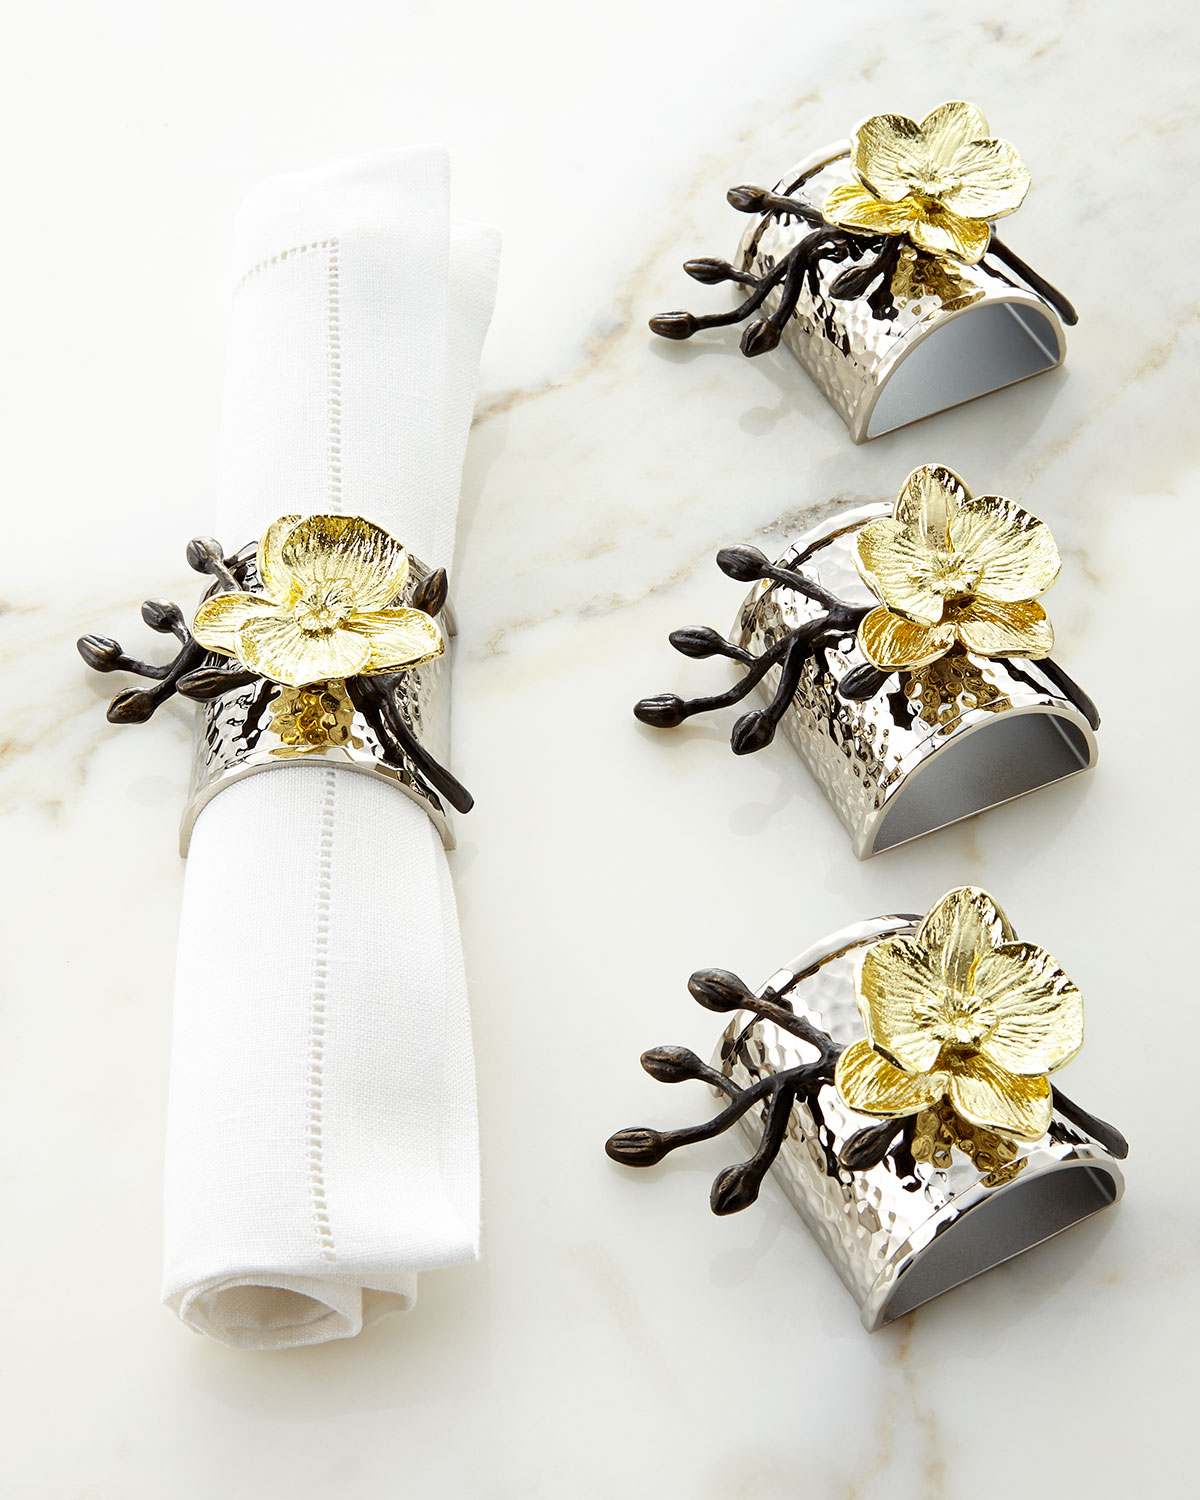 Orchid Trellis New Diamontrigue Jewelry: Michael Aram Four Gold Orchid Napkin Rings